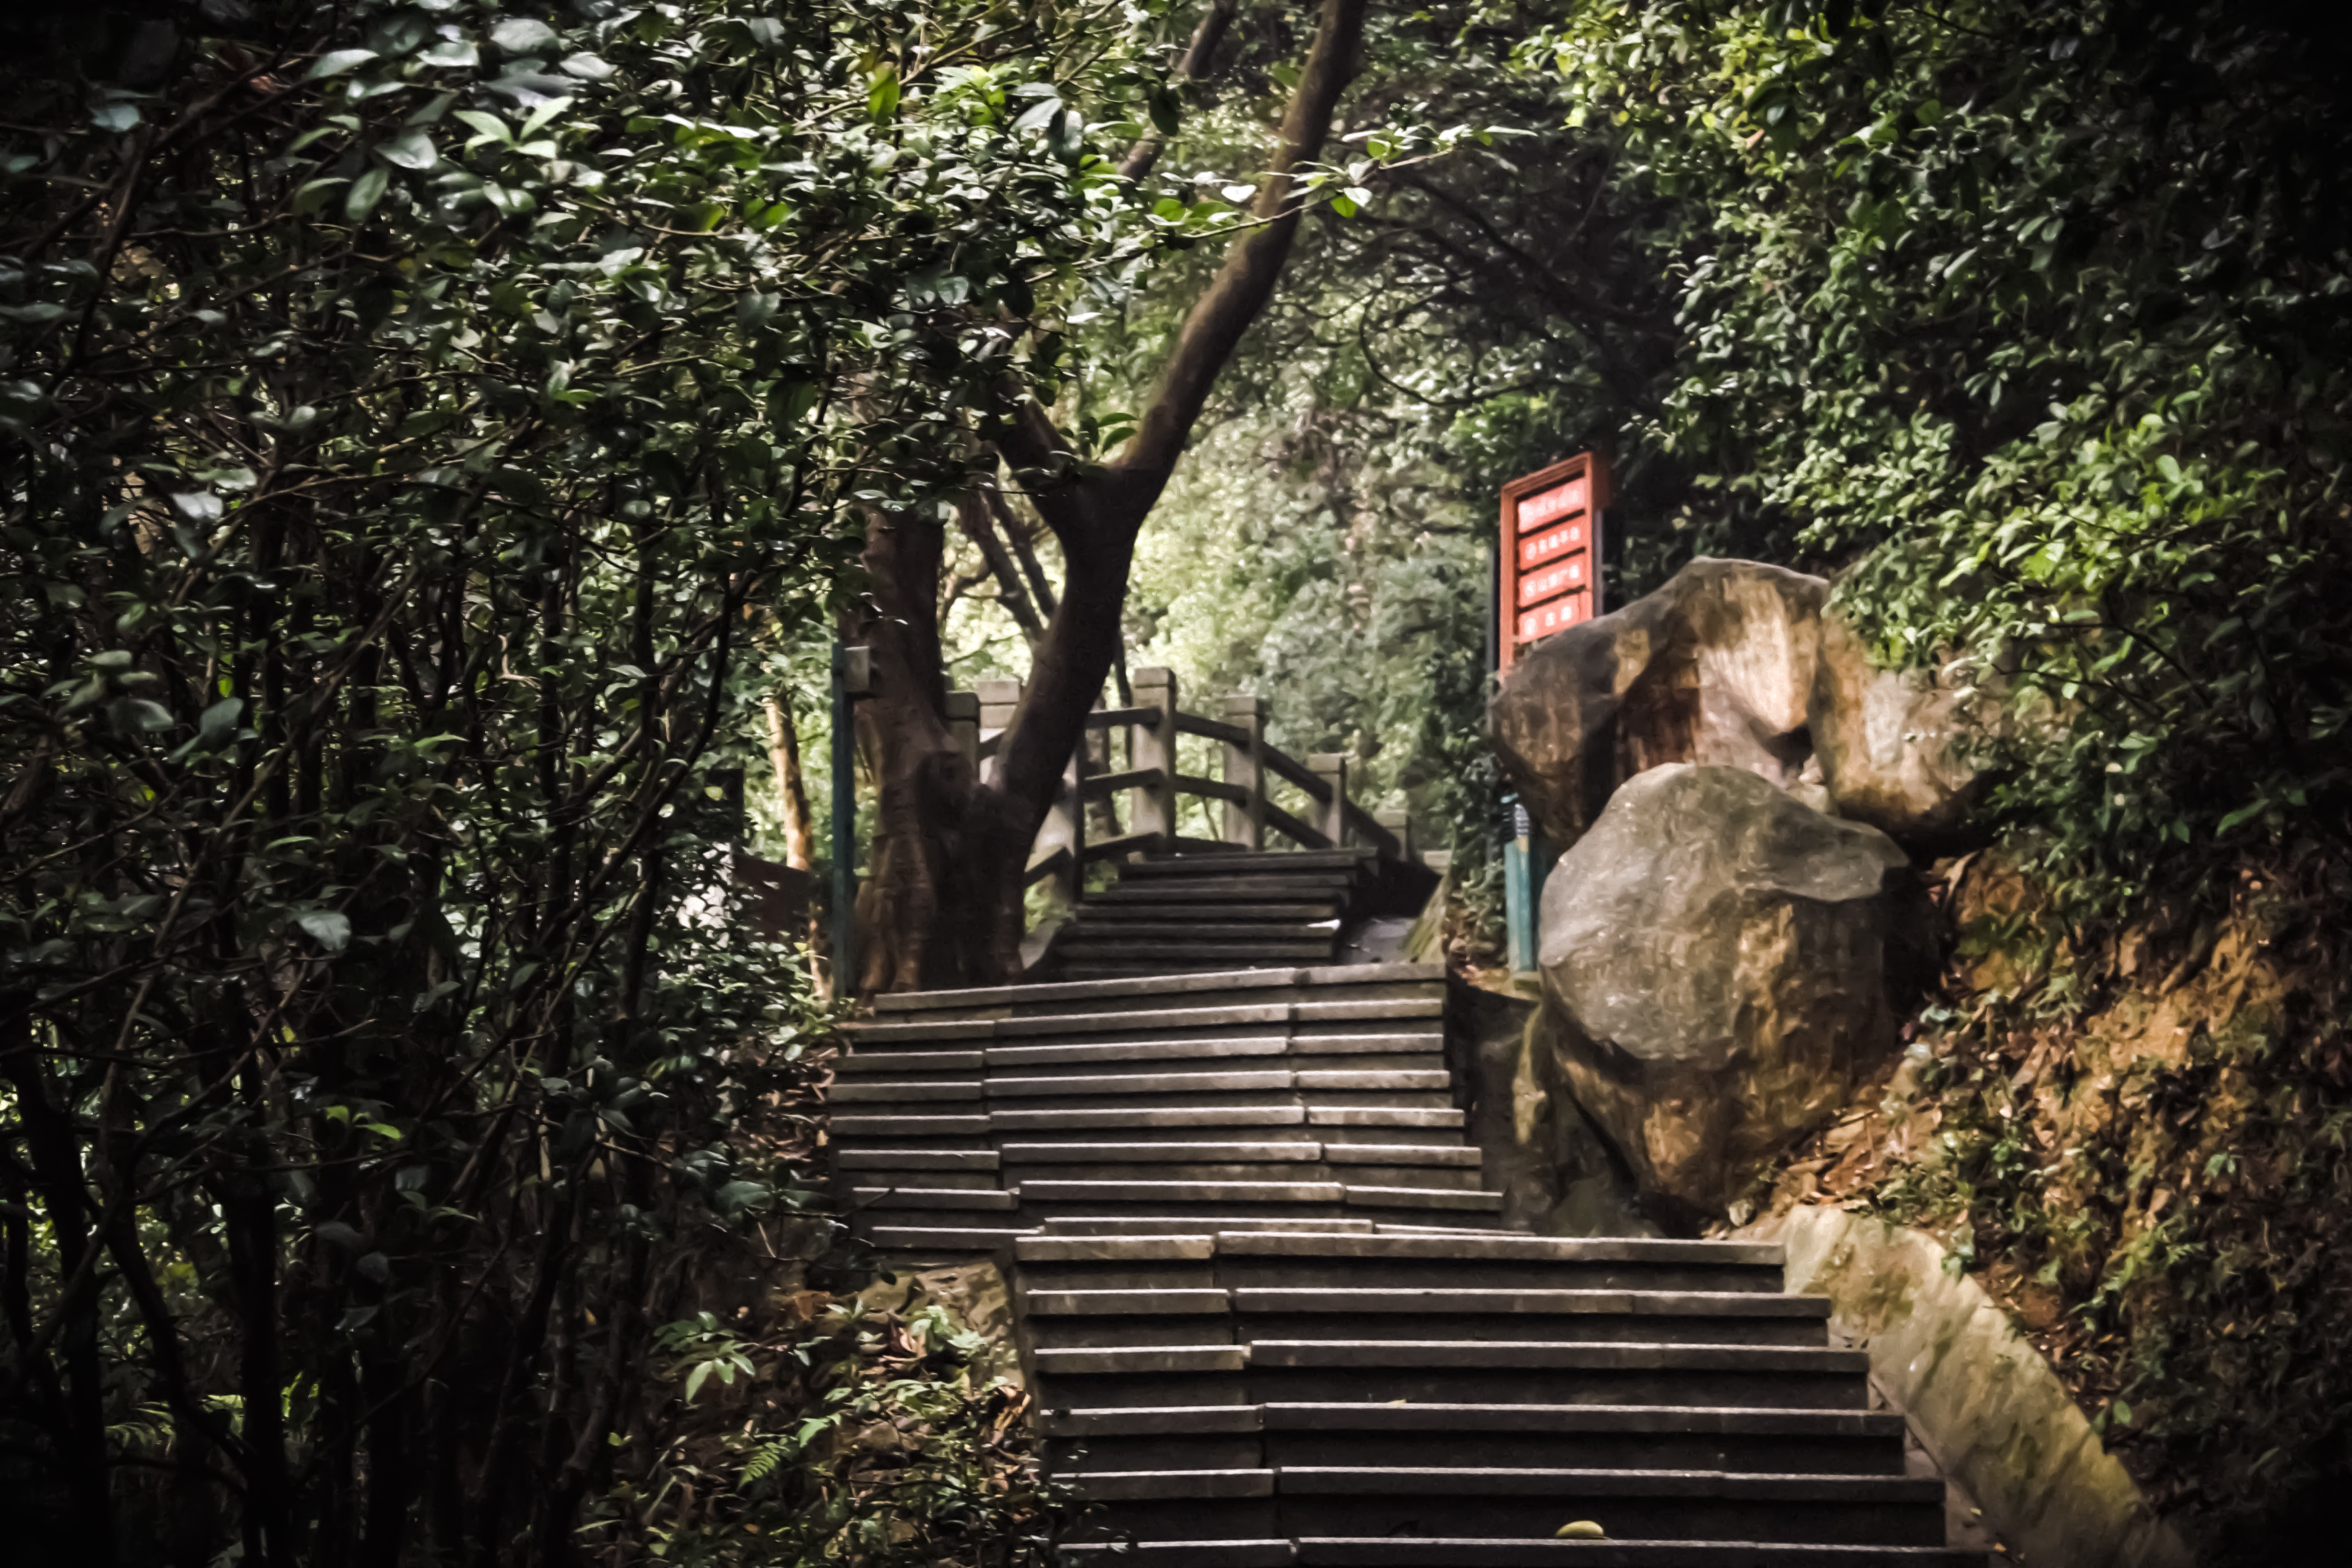 stair with boulder and treeson side